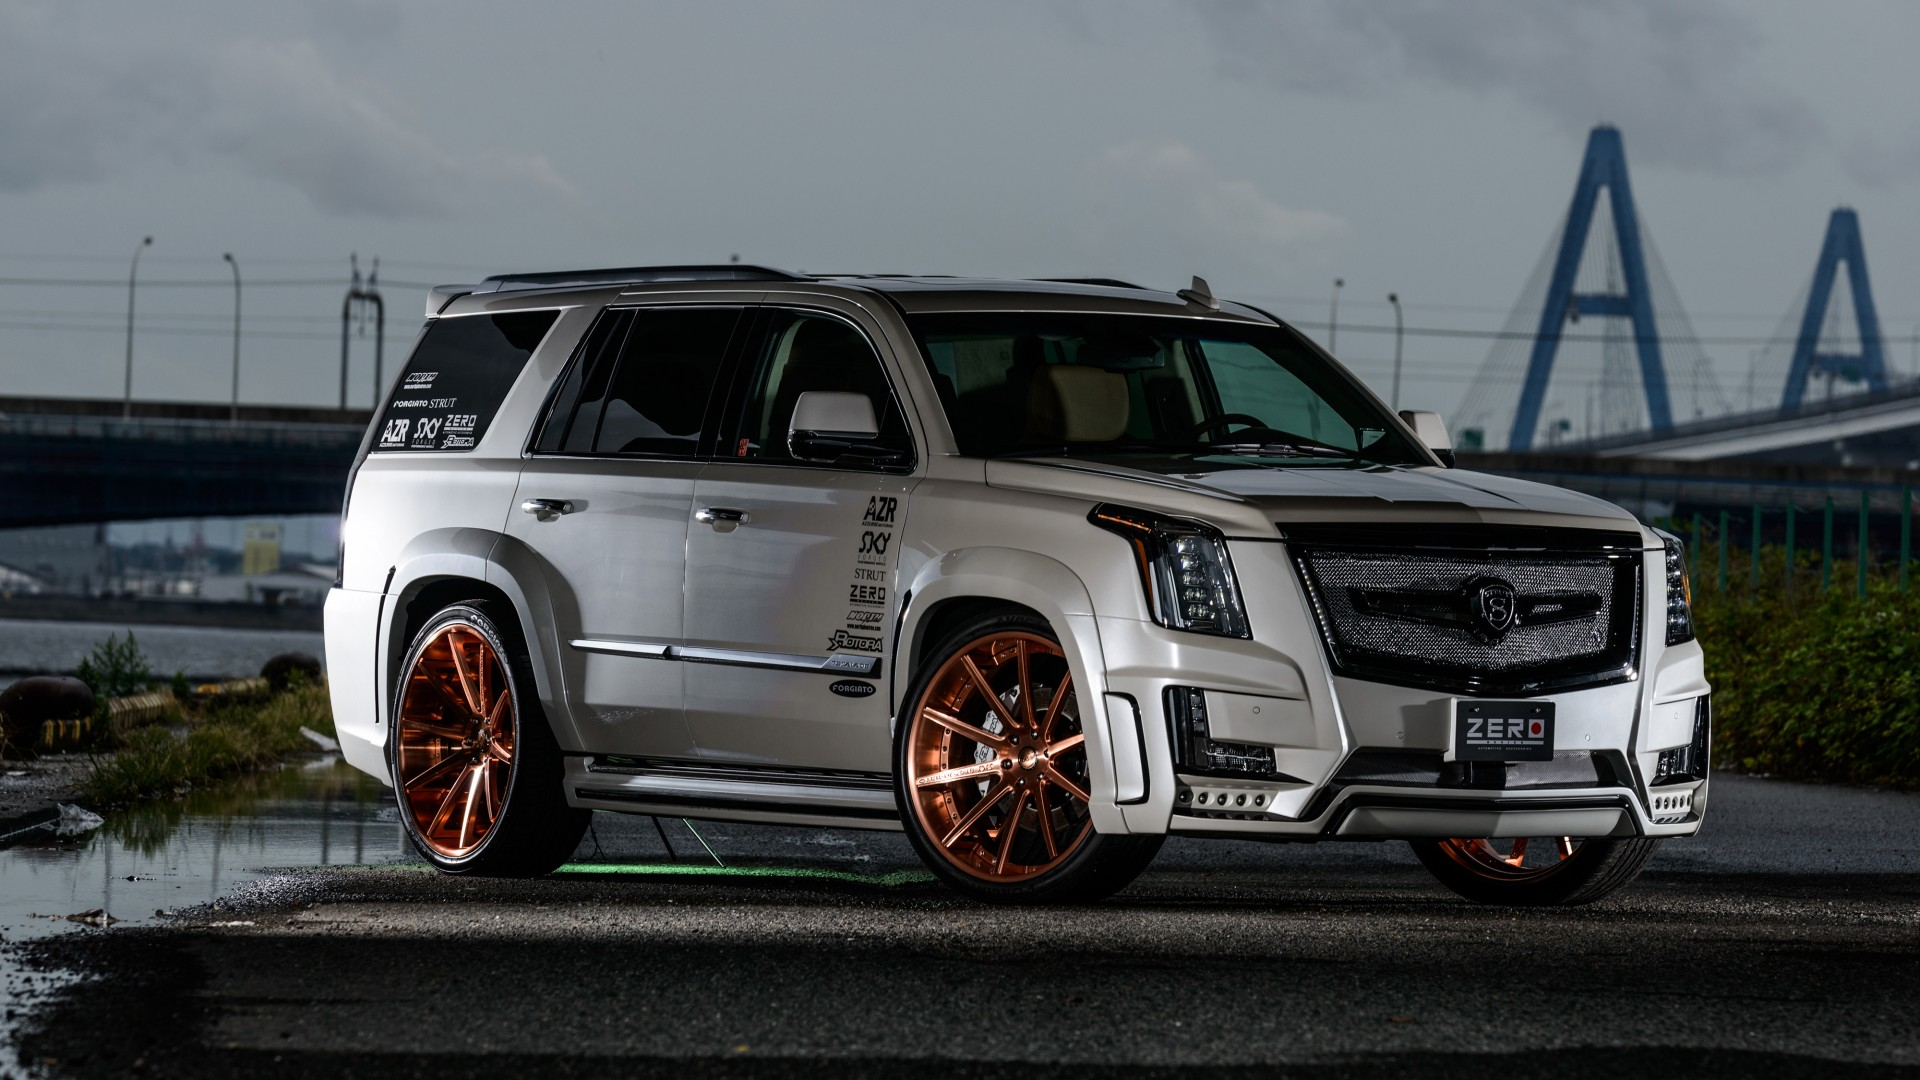 Zero Design Cadillac Escalade 2019 4k Wallpaper Hd Car